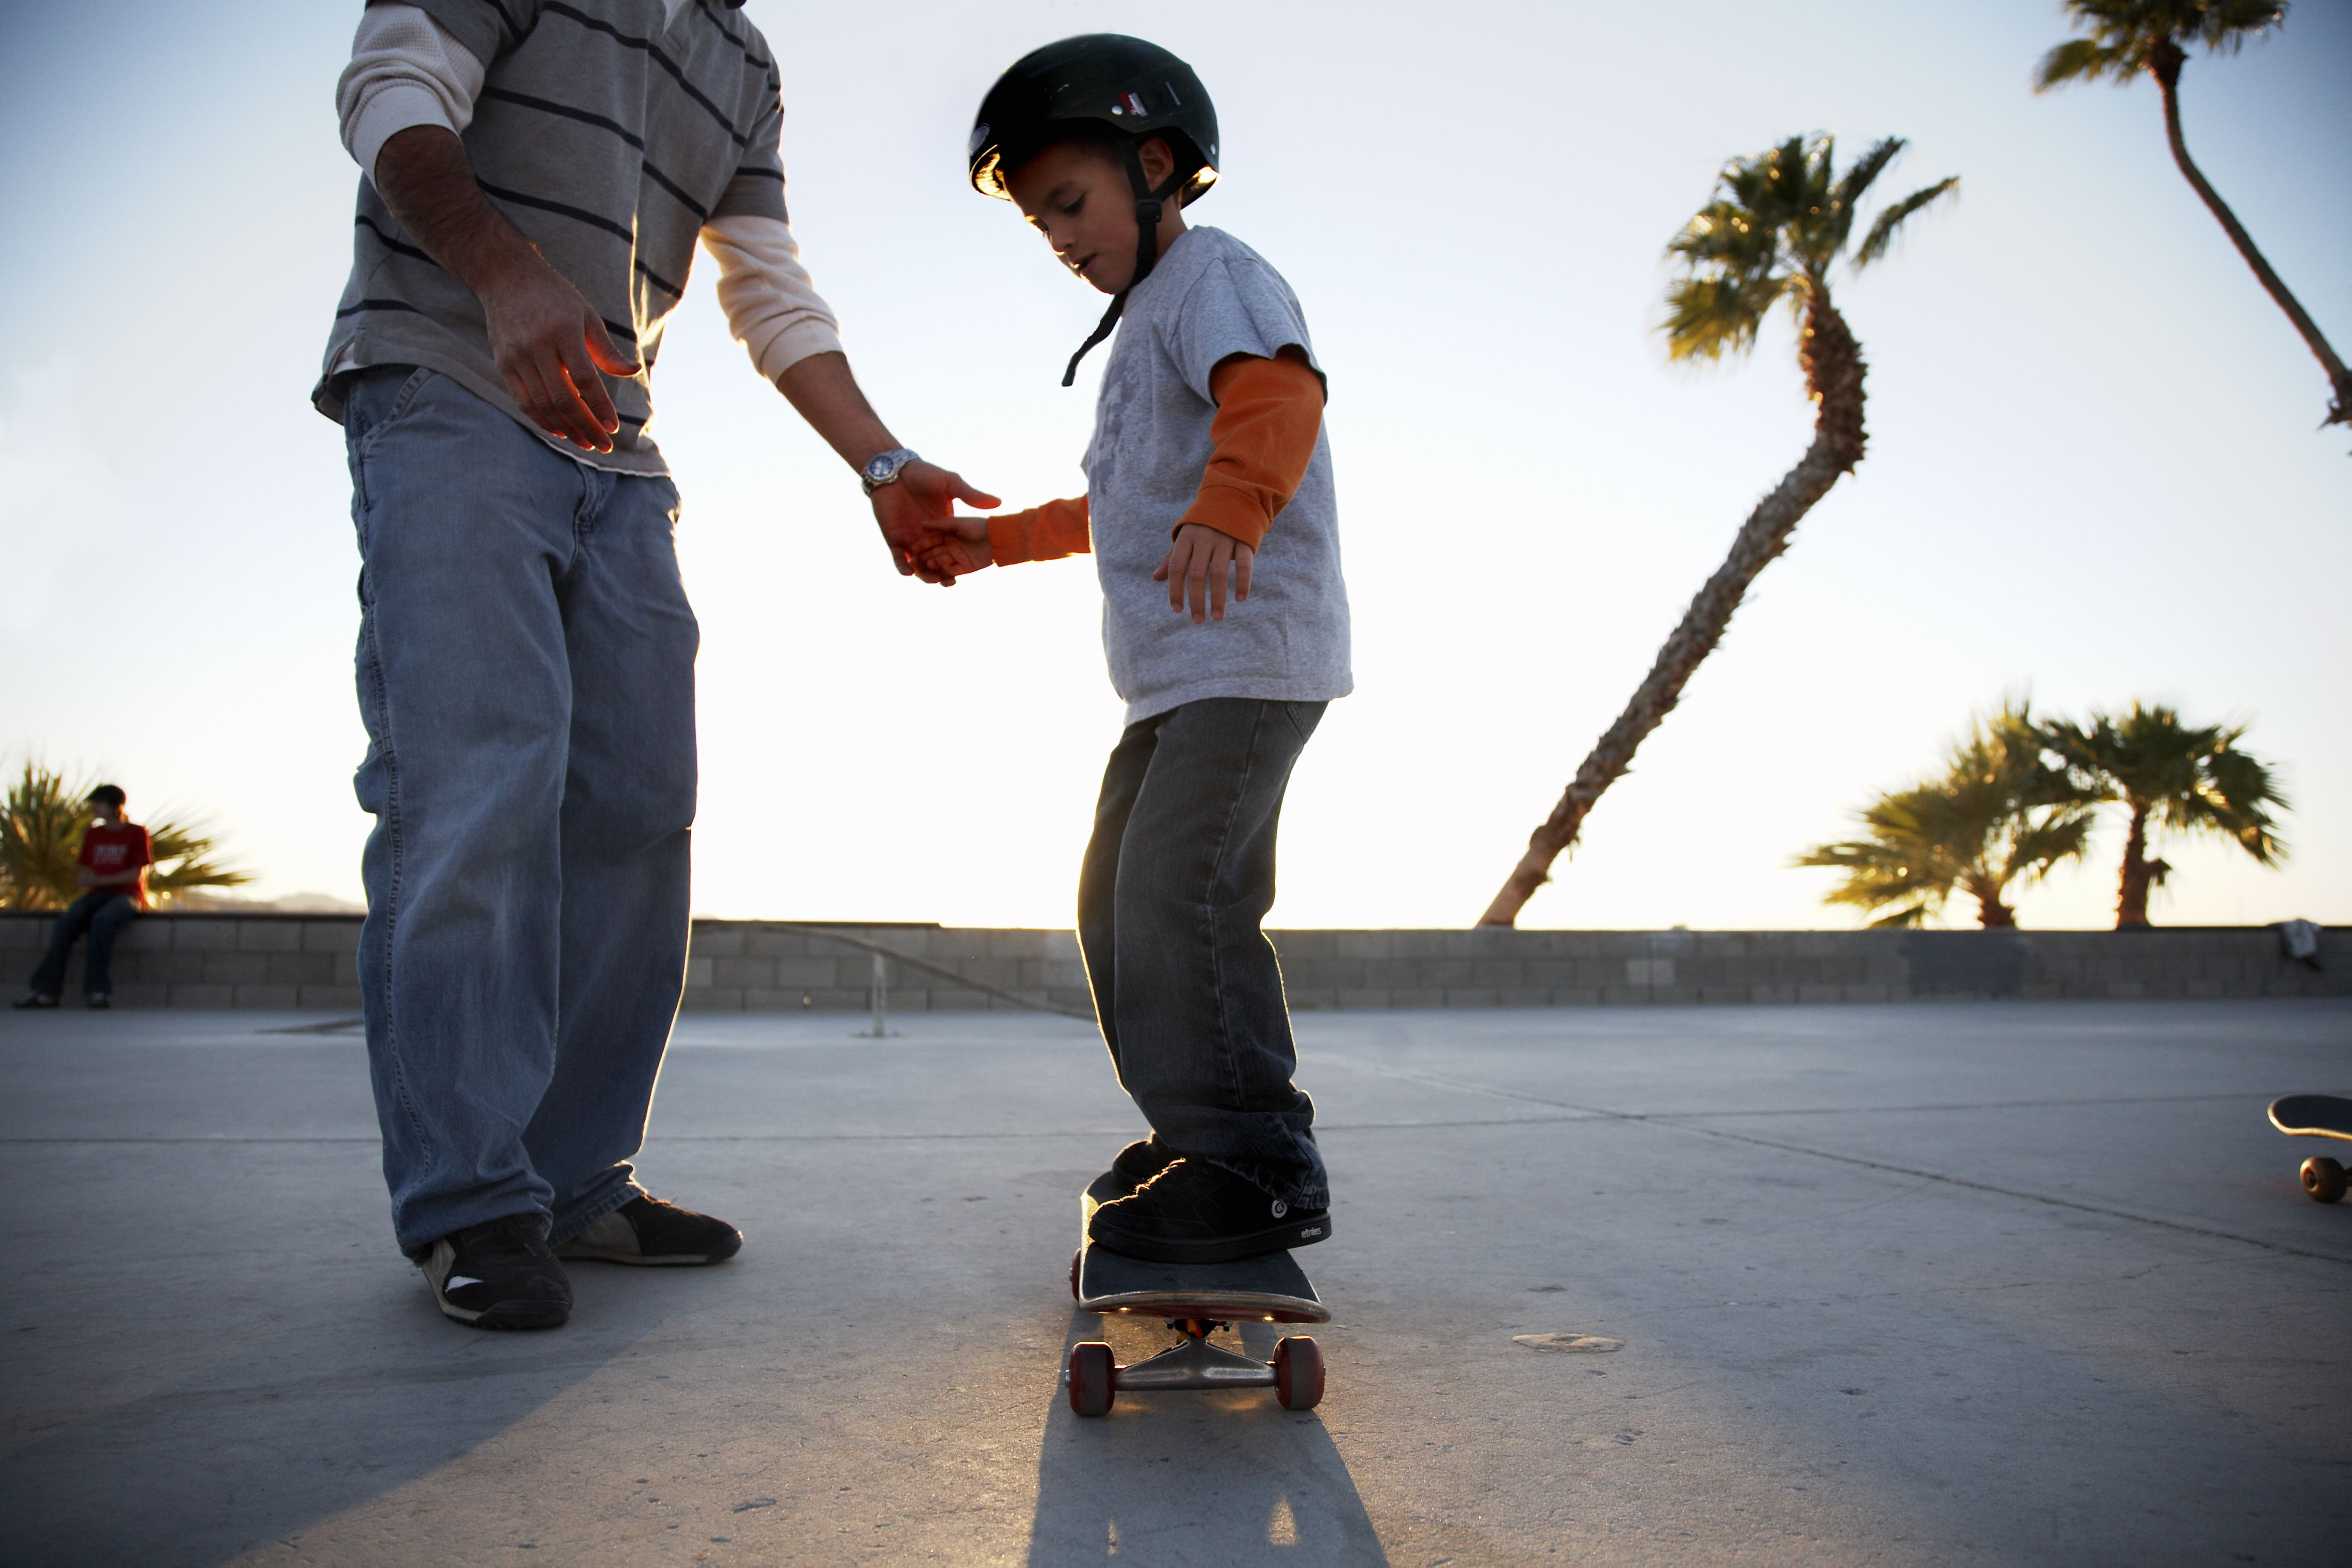 Essential Beginner Skateboard Gear and Skills